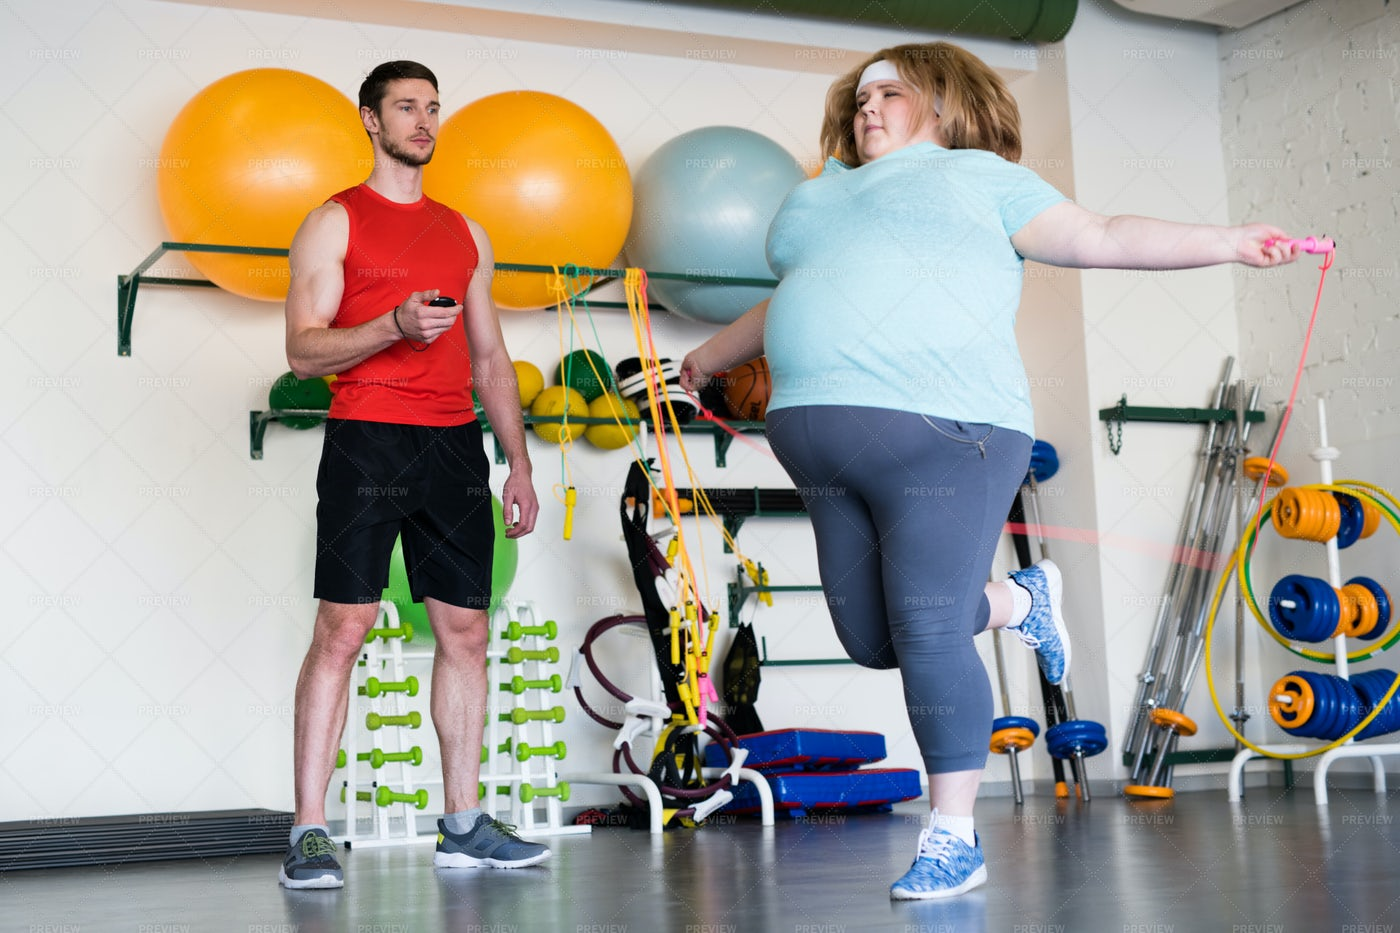 Obese Woman Jumping Rope: Stock Photos